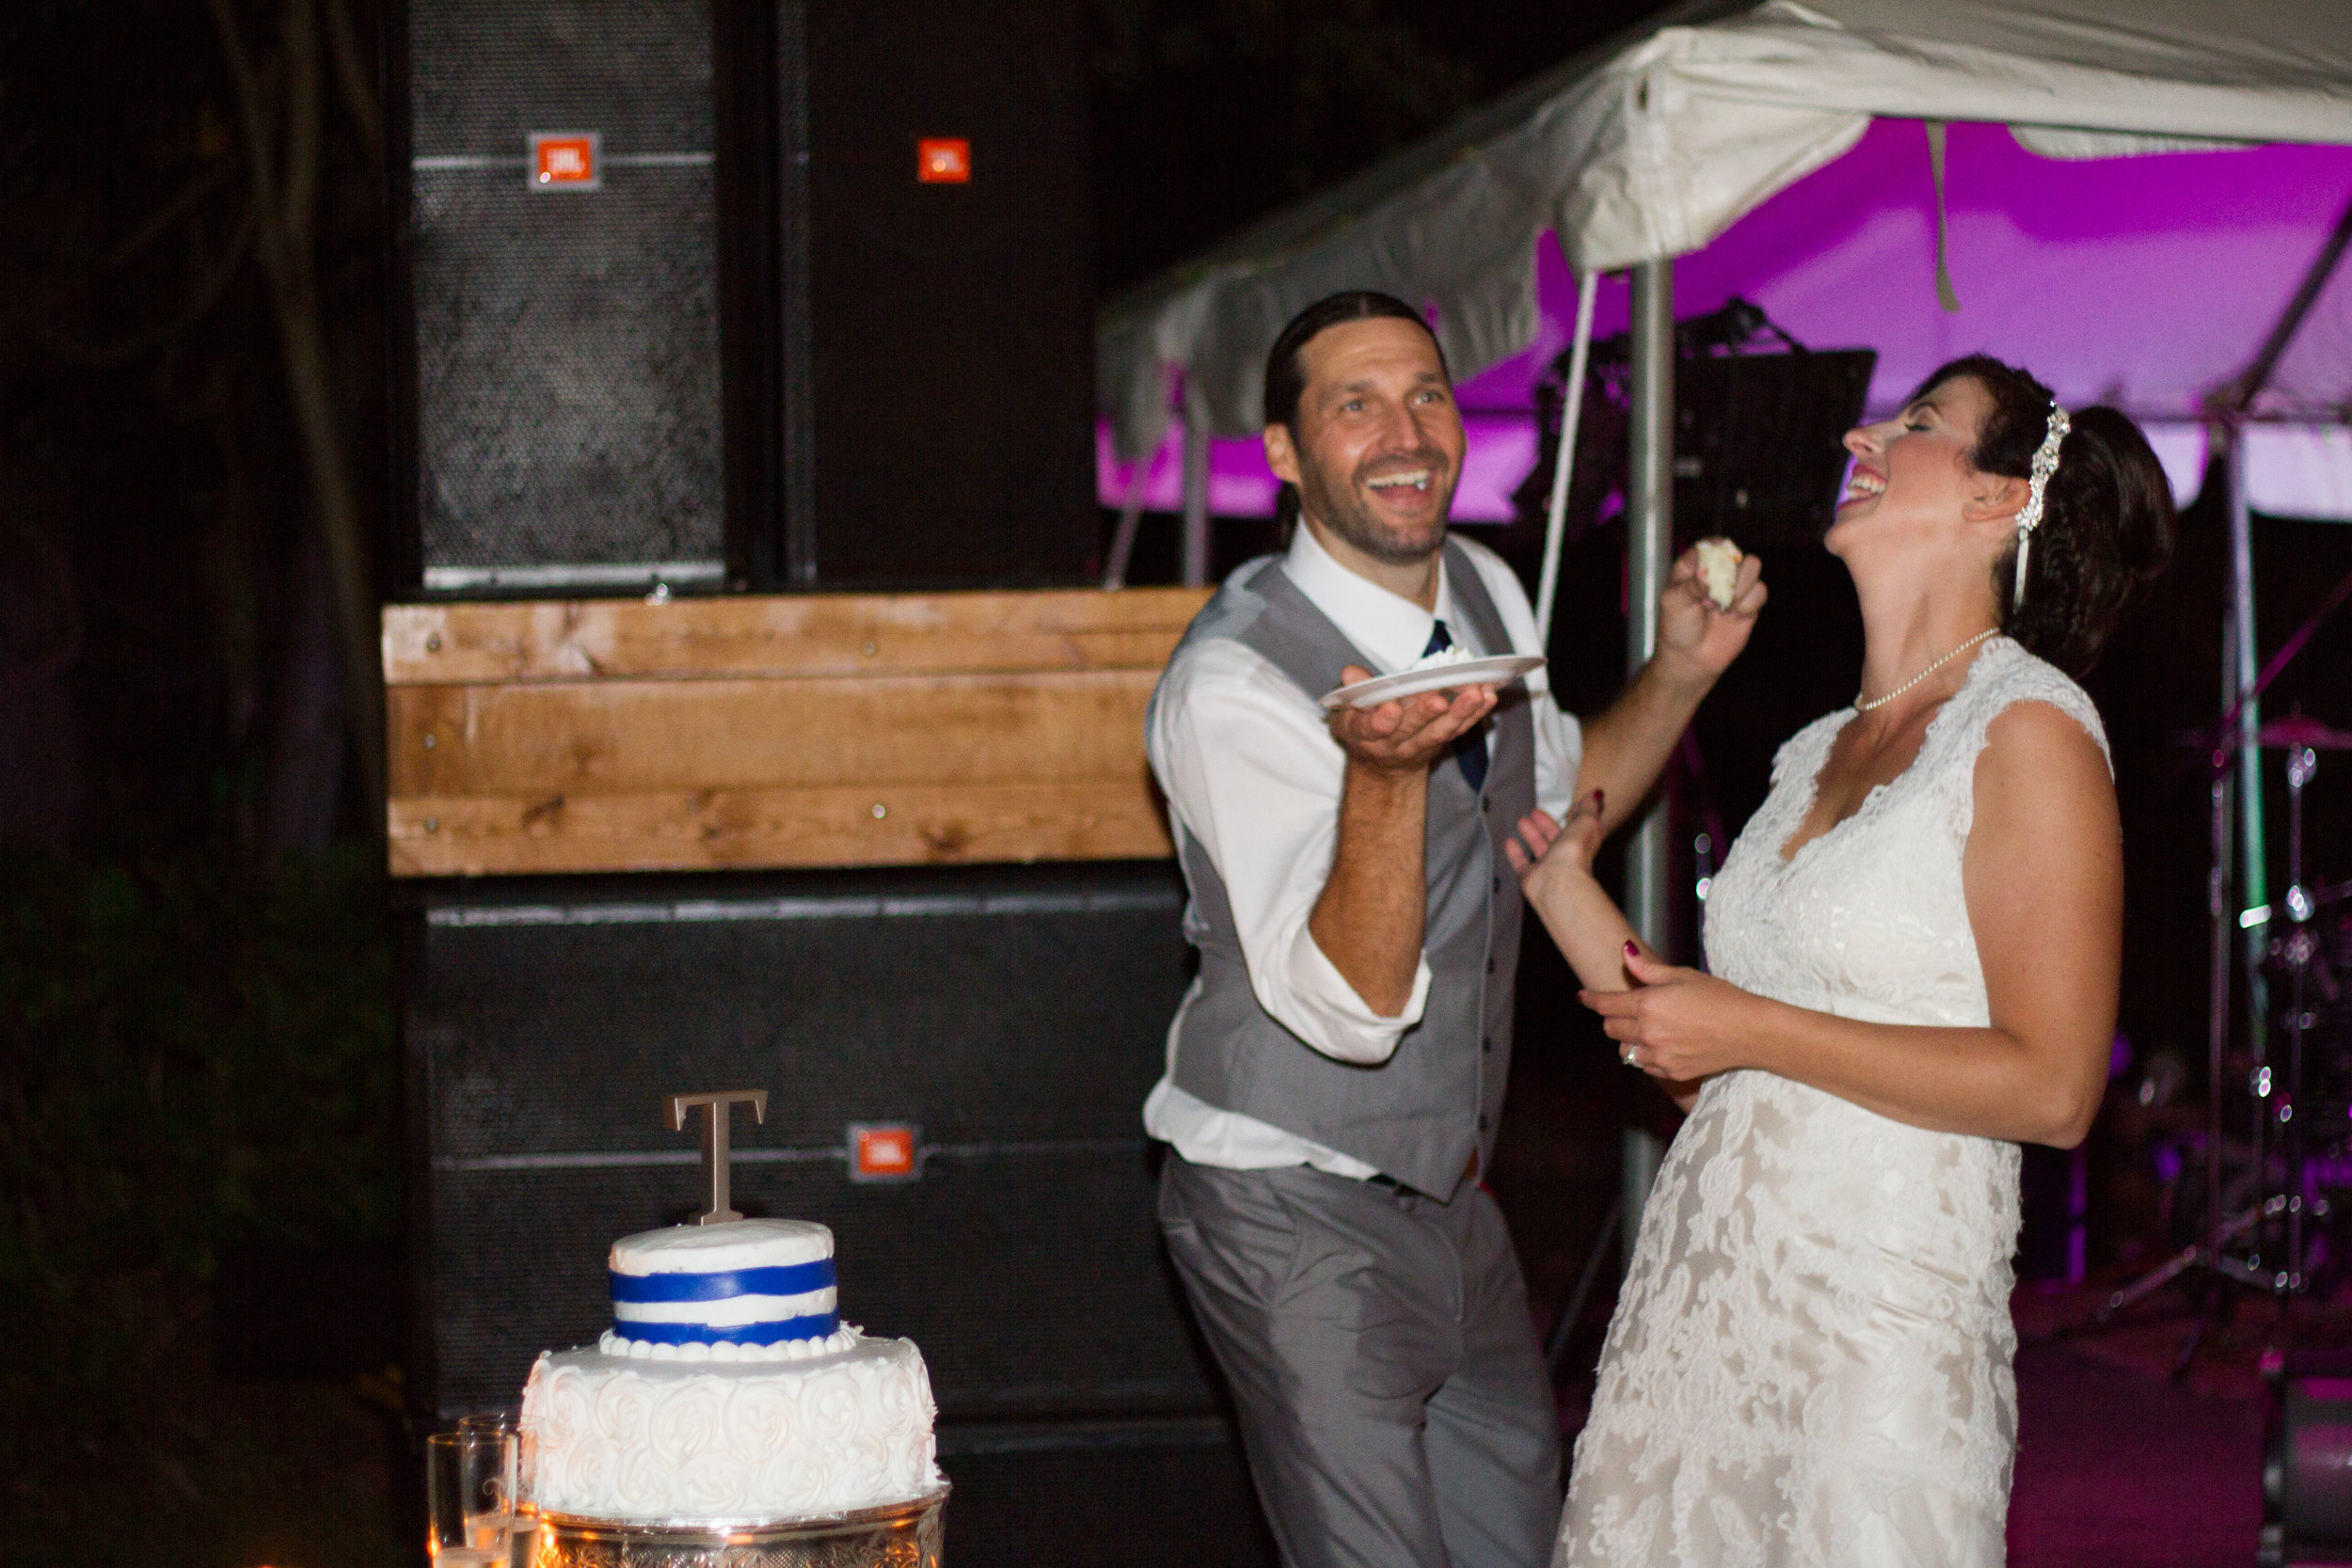 Jacqueline and Shawn Wedding (513 of 597).jpg